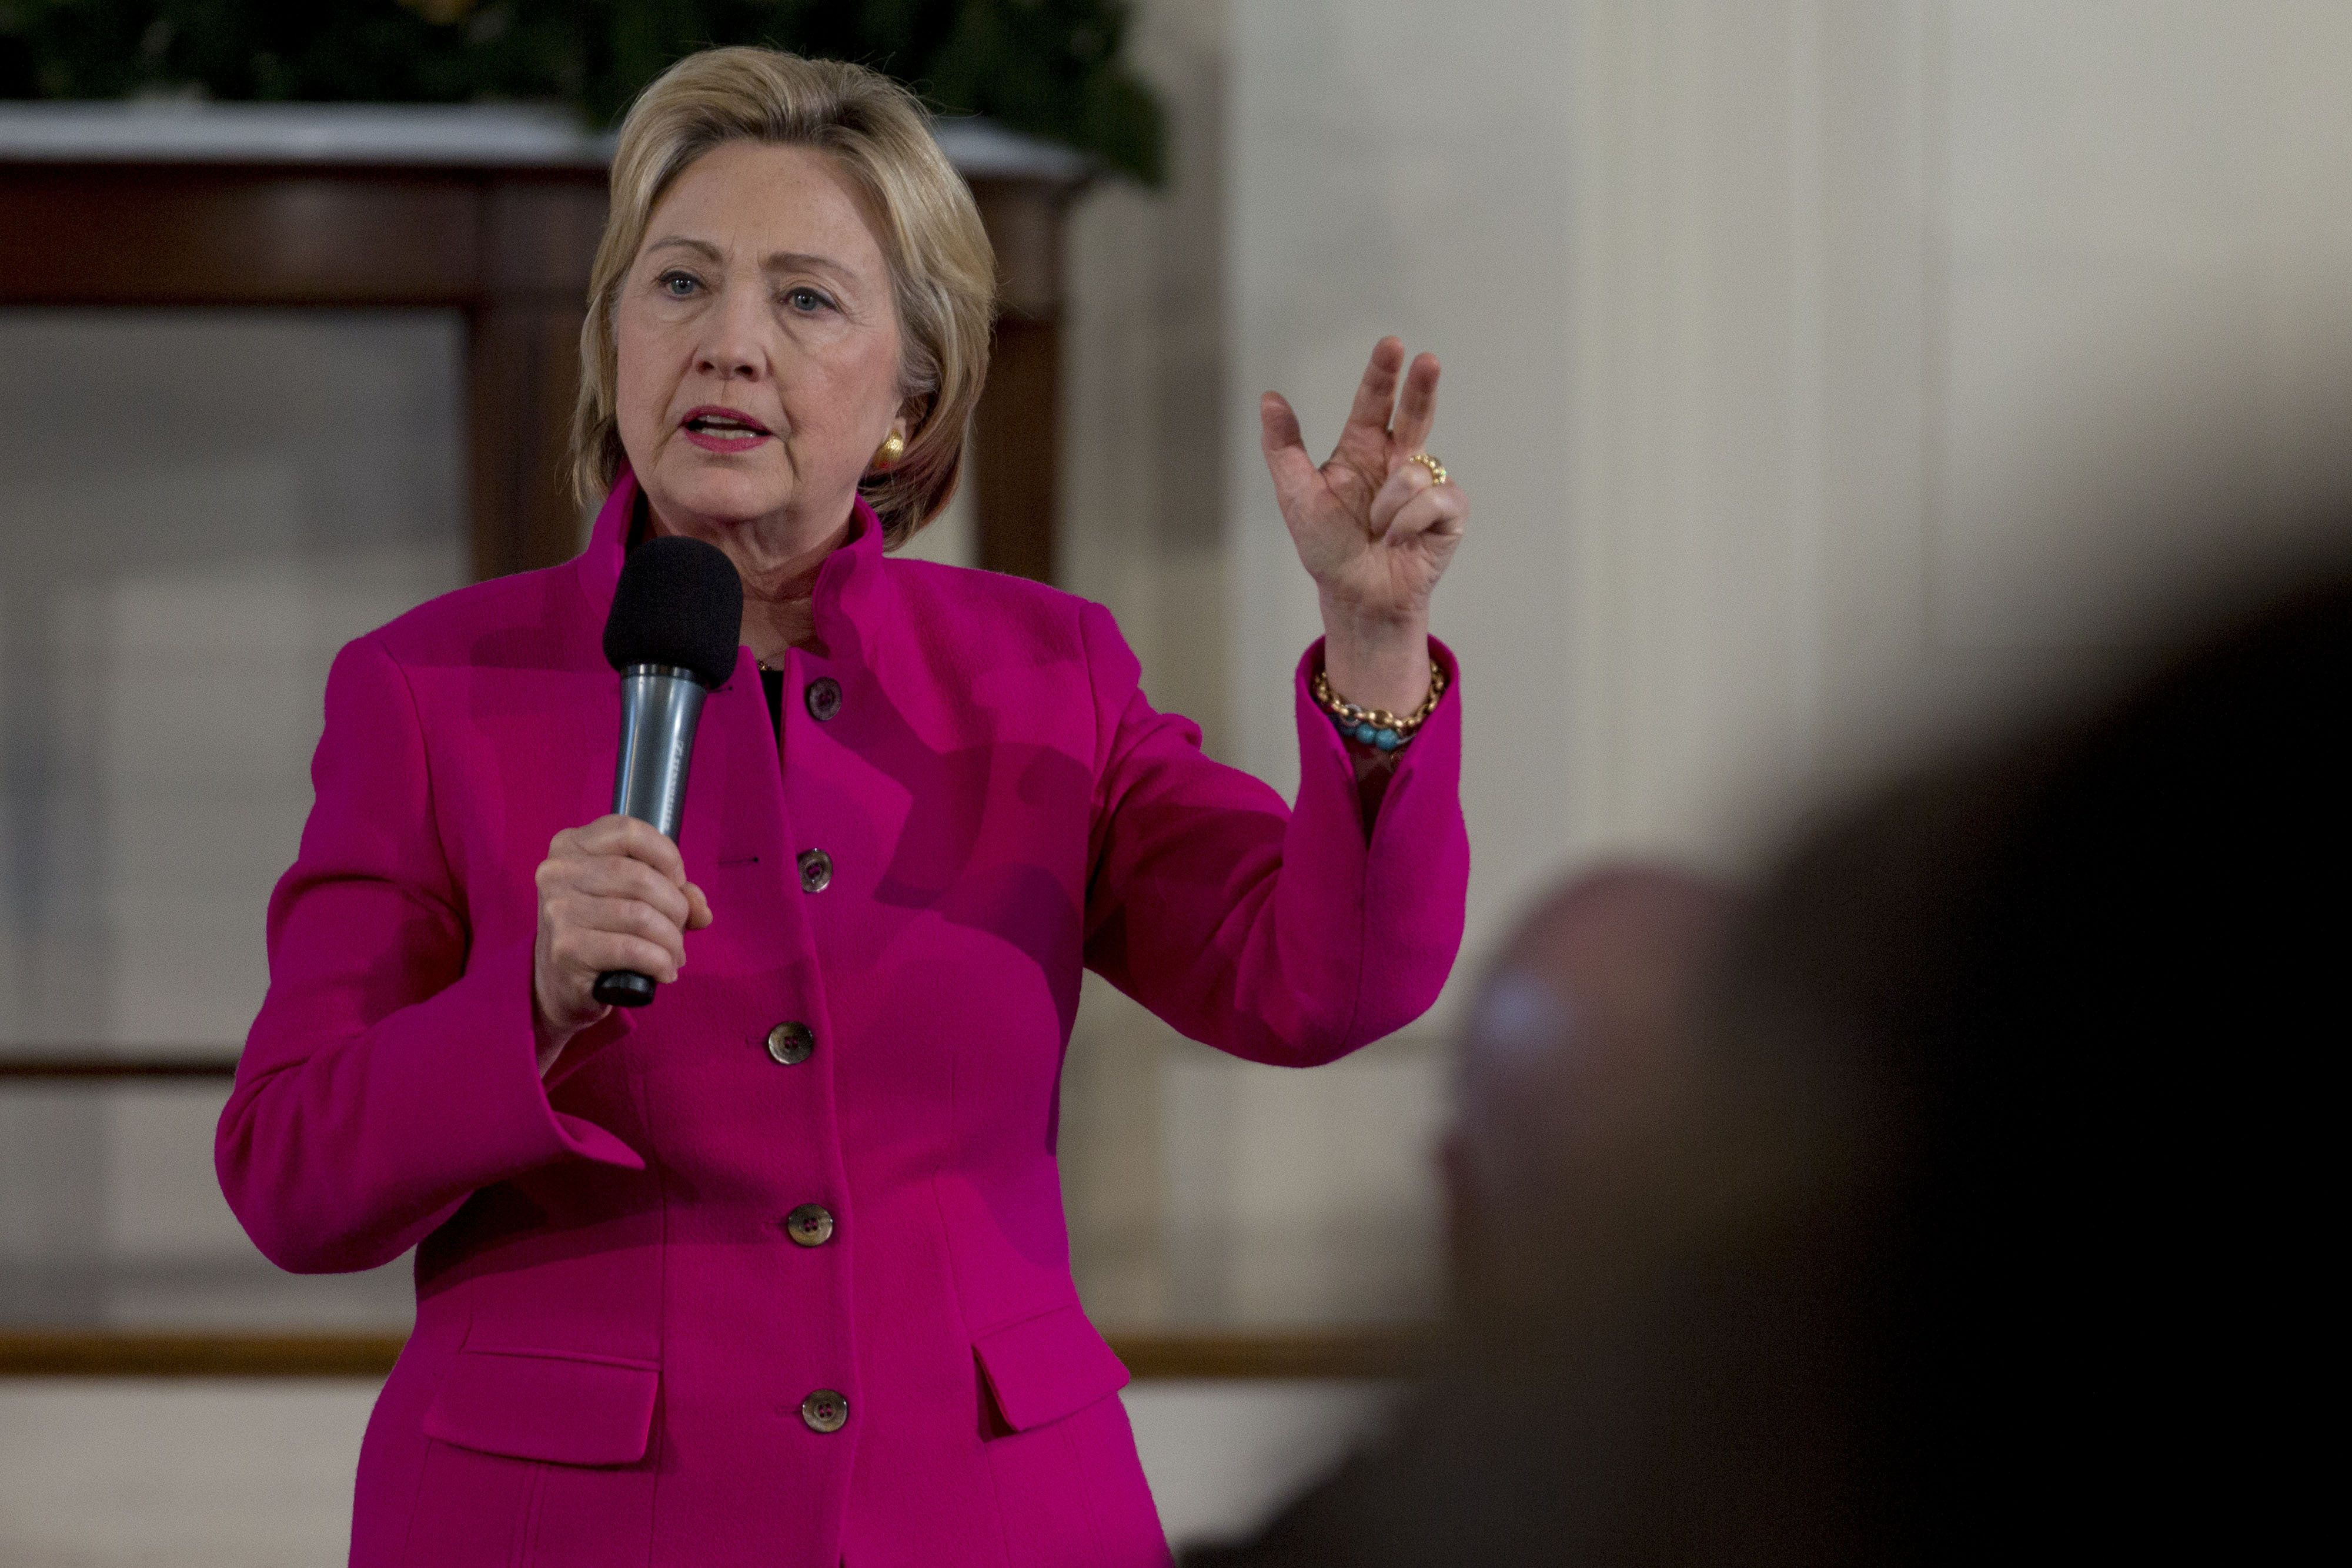 Hillary Clinton, former Secretary of State and 2016 Democratic presidential candidate, speaks during a town hall meeting at South Church in Portsmouth, New Hampshire, U.S., on Tuesday, Dec. 29, 2015. On Monday as Republican presidential candidate front-runner Donald Trump criticized her husband, Clinton vowed to stand up to him. Photographer: Andrew Harrer/Bloomberg via Getty Images